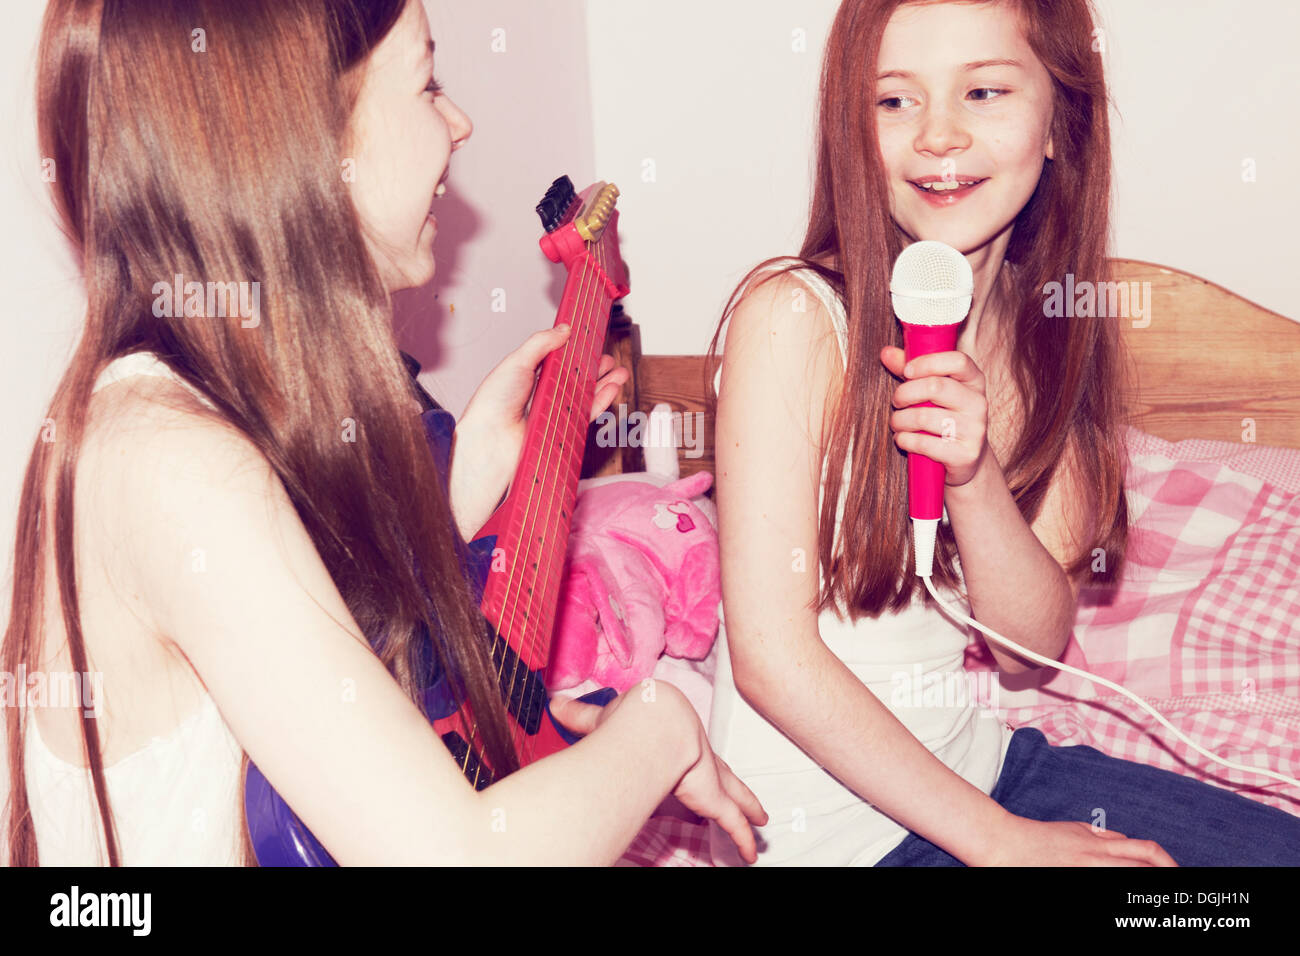 Two girls playing guitar and singing into microphone in bedroom - Stock Image